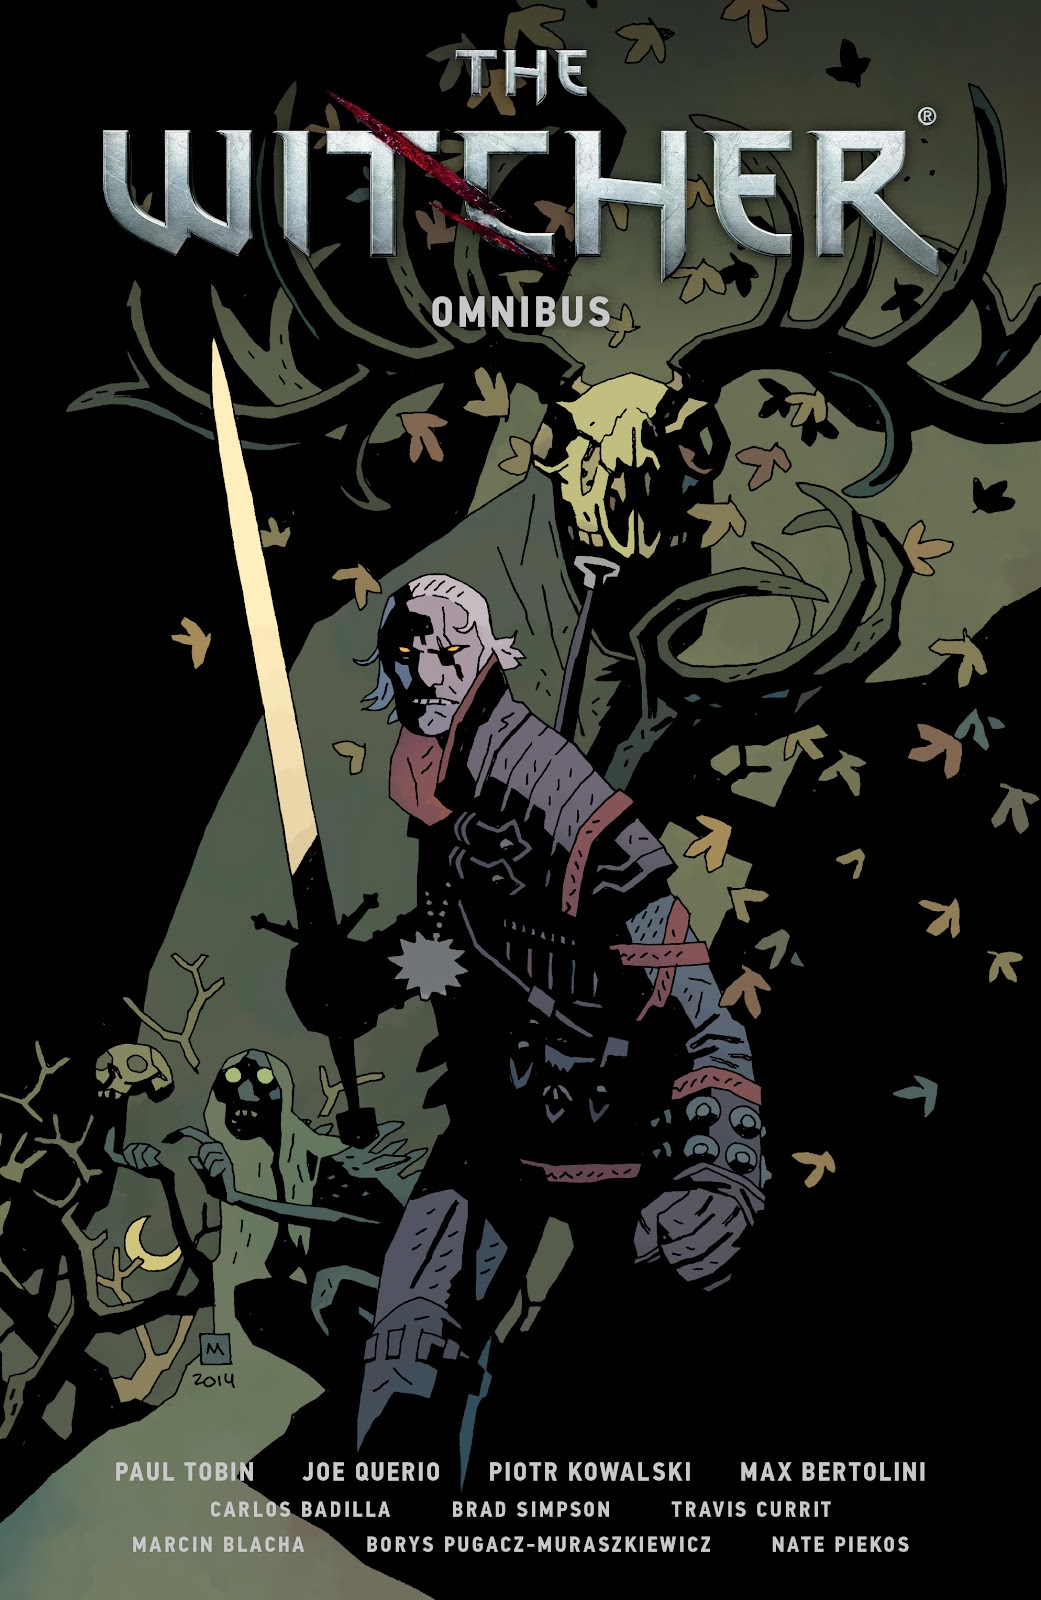 Read online The Witcher Omnibus comic -  Issue # TPB (Part 1) - 1